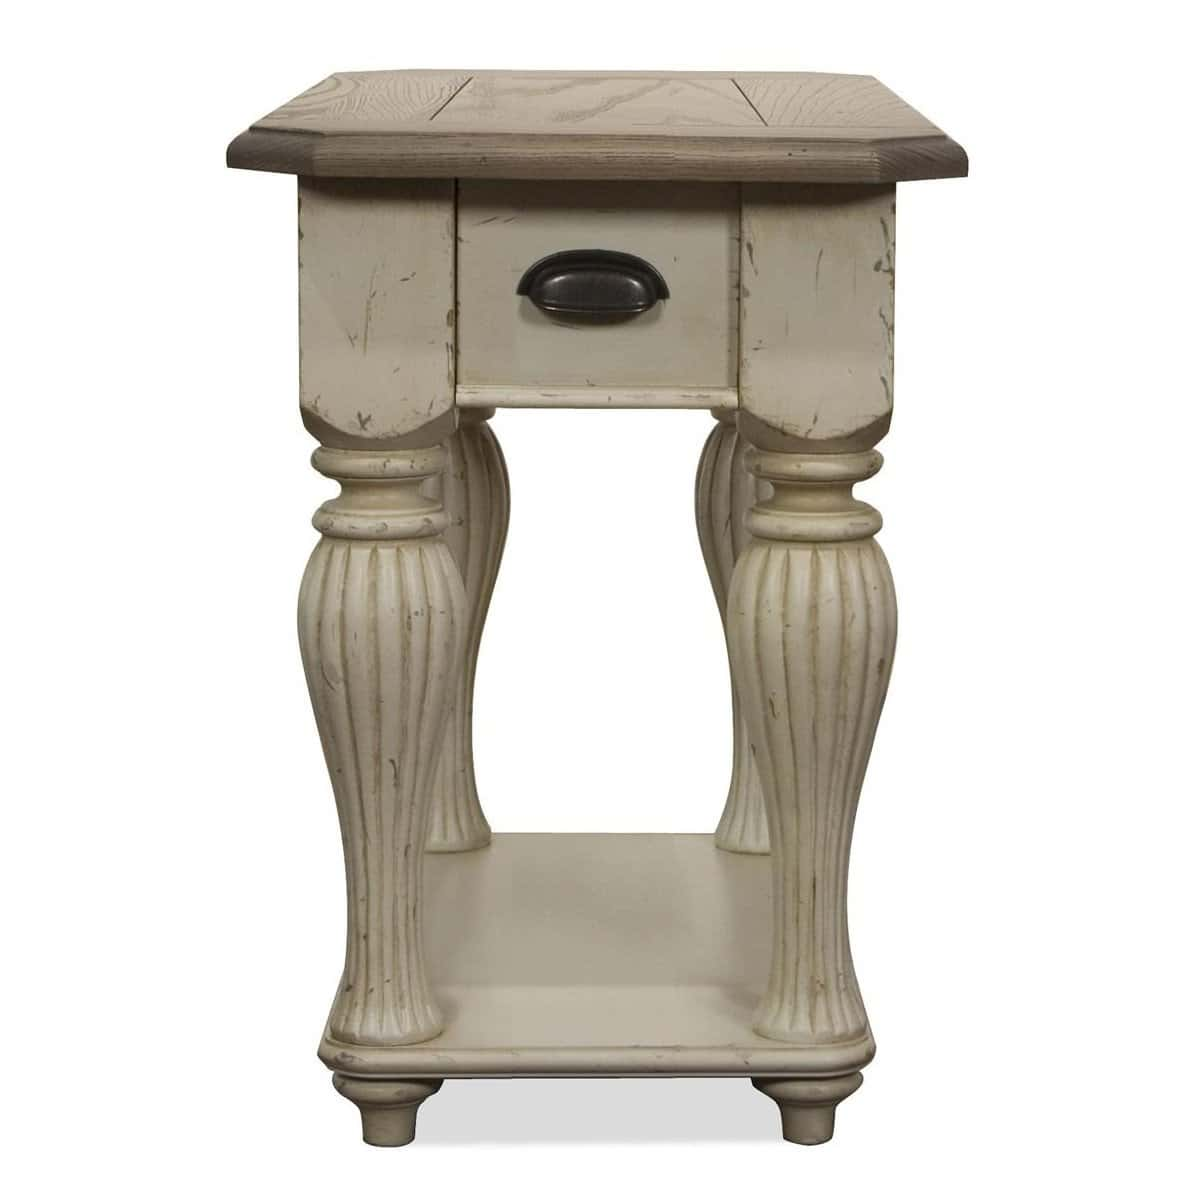 distressed end tables coffee loccie better homes gardens ideas grey quatrefoil table with mirror accent foot console piece living room glass set lanterns chairside ikea bath and